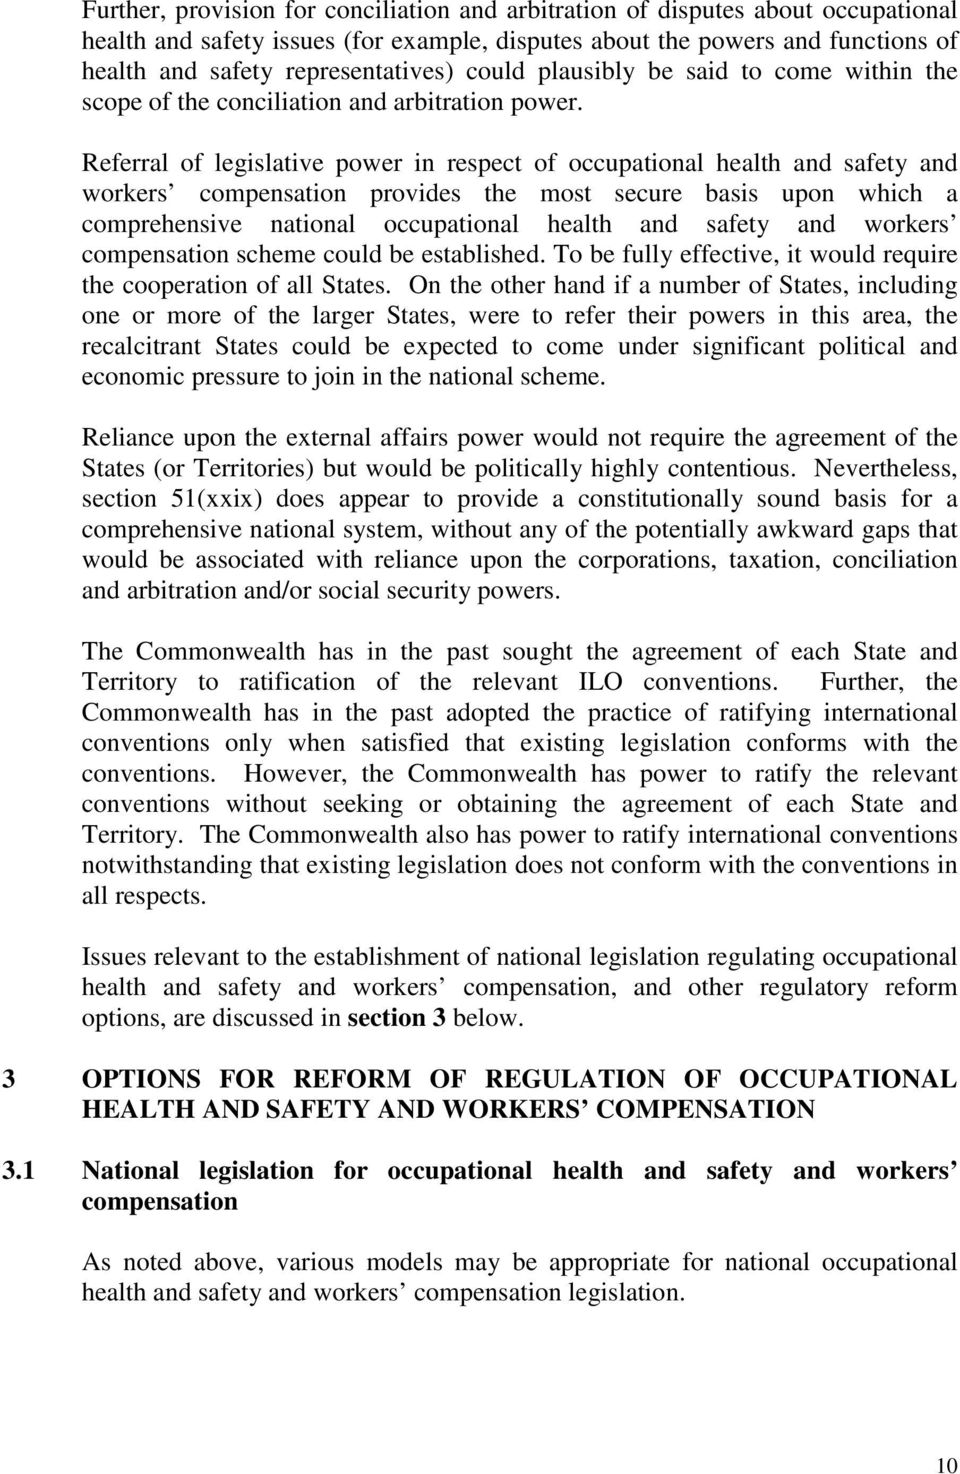 Referral of legislative power in respect of occupational health and safety and workers compensation provides the most secure basis upon which a comprehensive national occupational health and safety